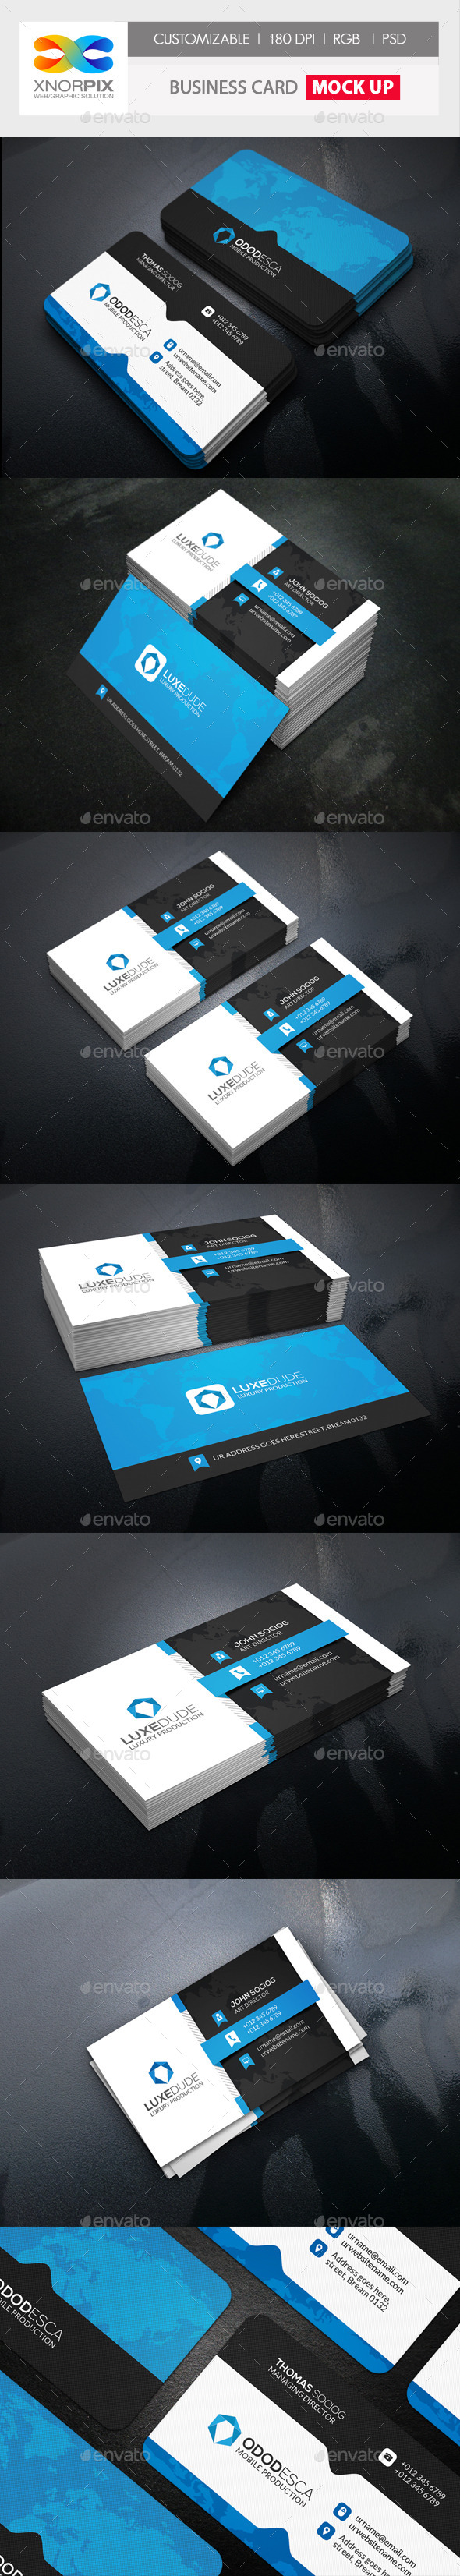 Realistic Business Card Mock up by axnorpix